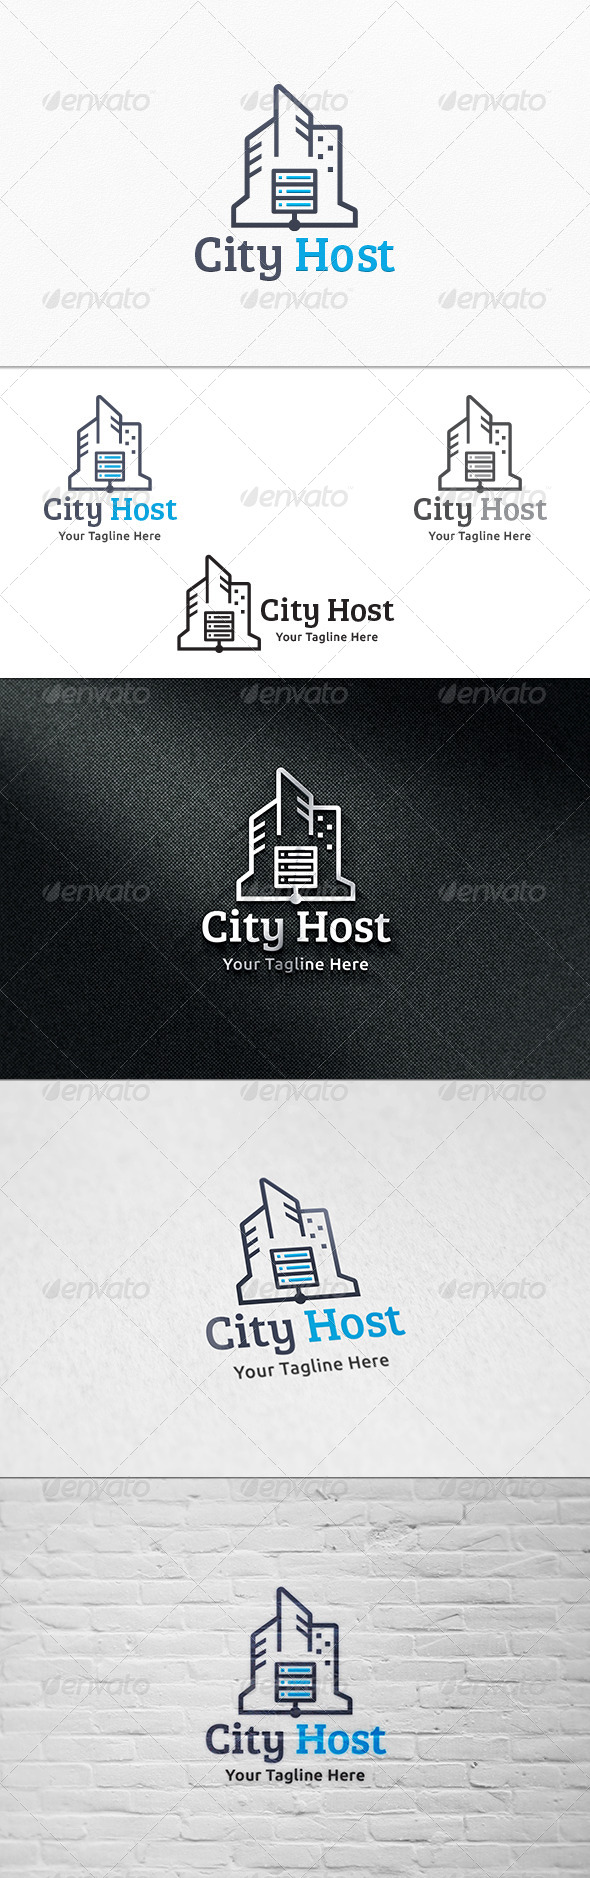 GraphicRiver City Host Logo Template 8181771